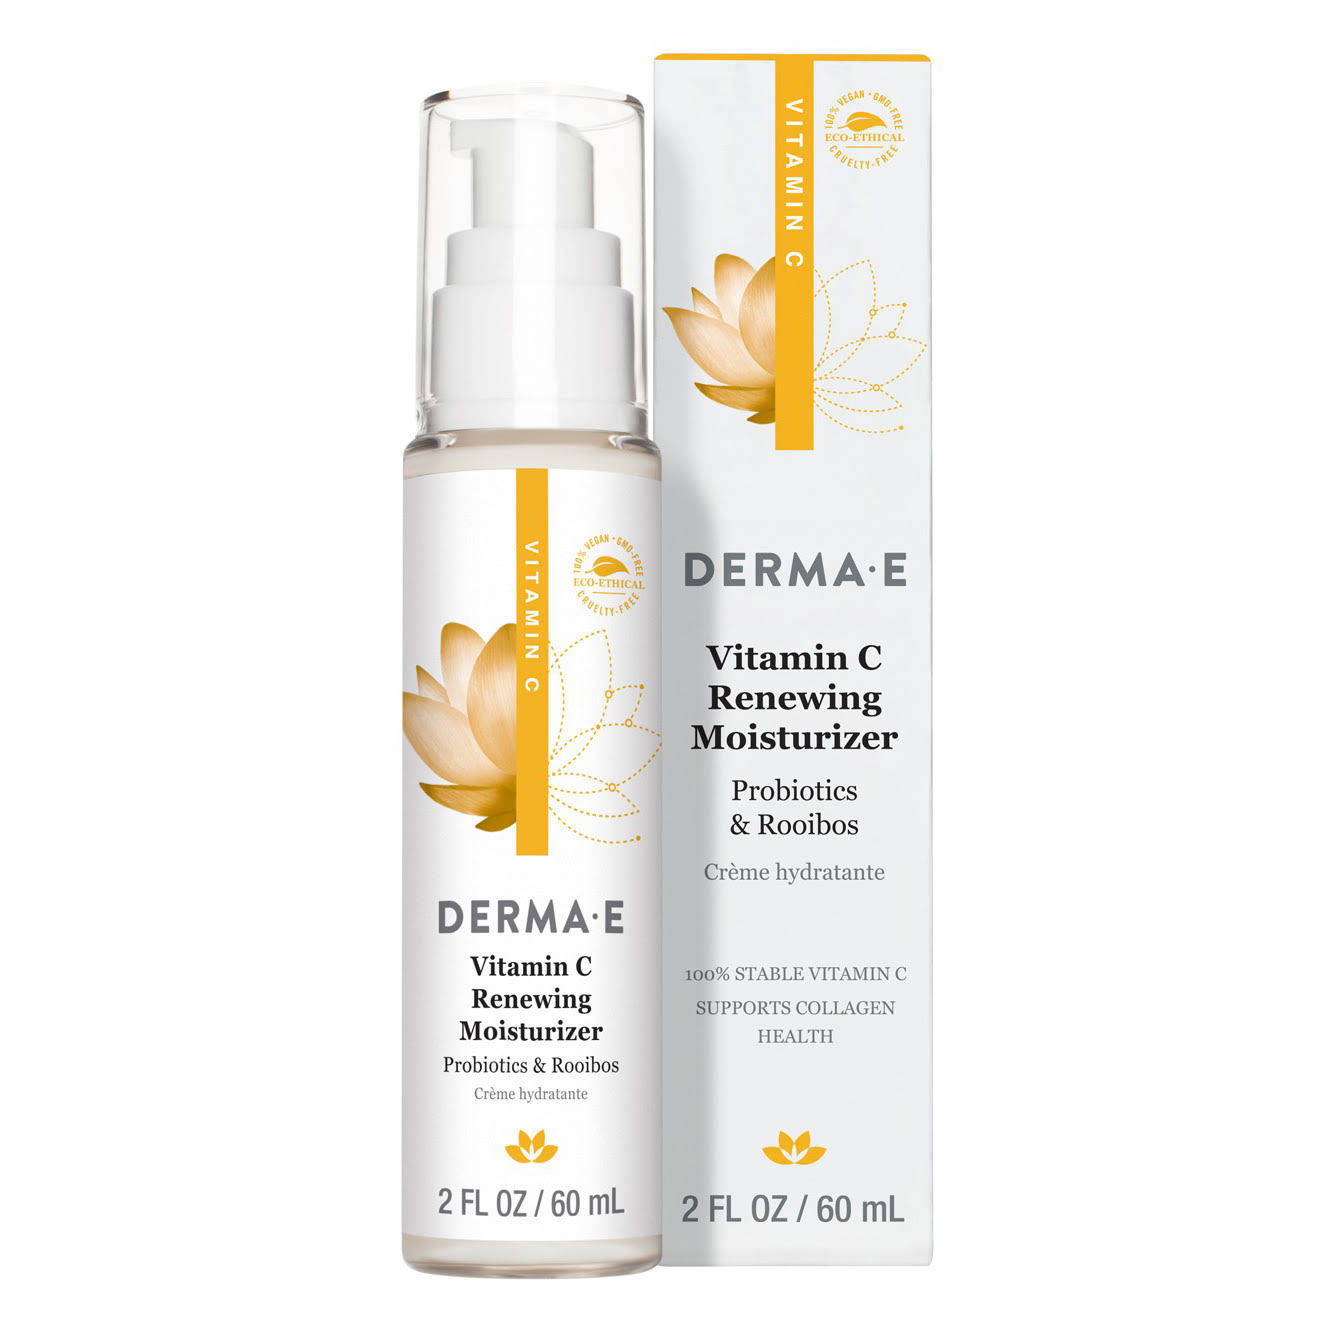 Derma E Vitamin C Renewing Moisturizer - 2oz